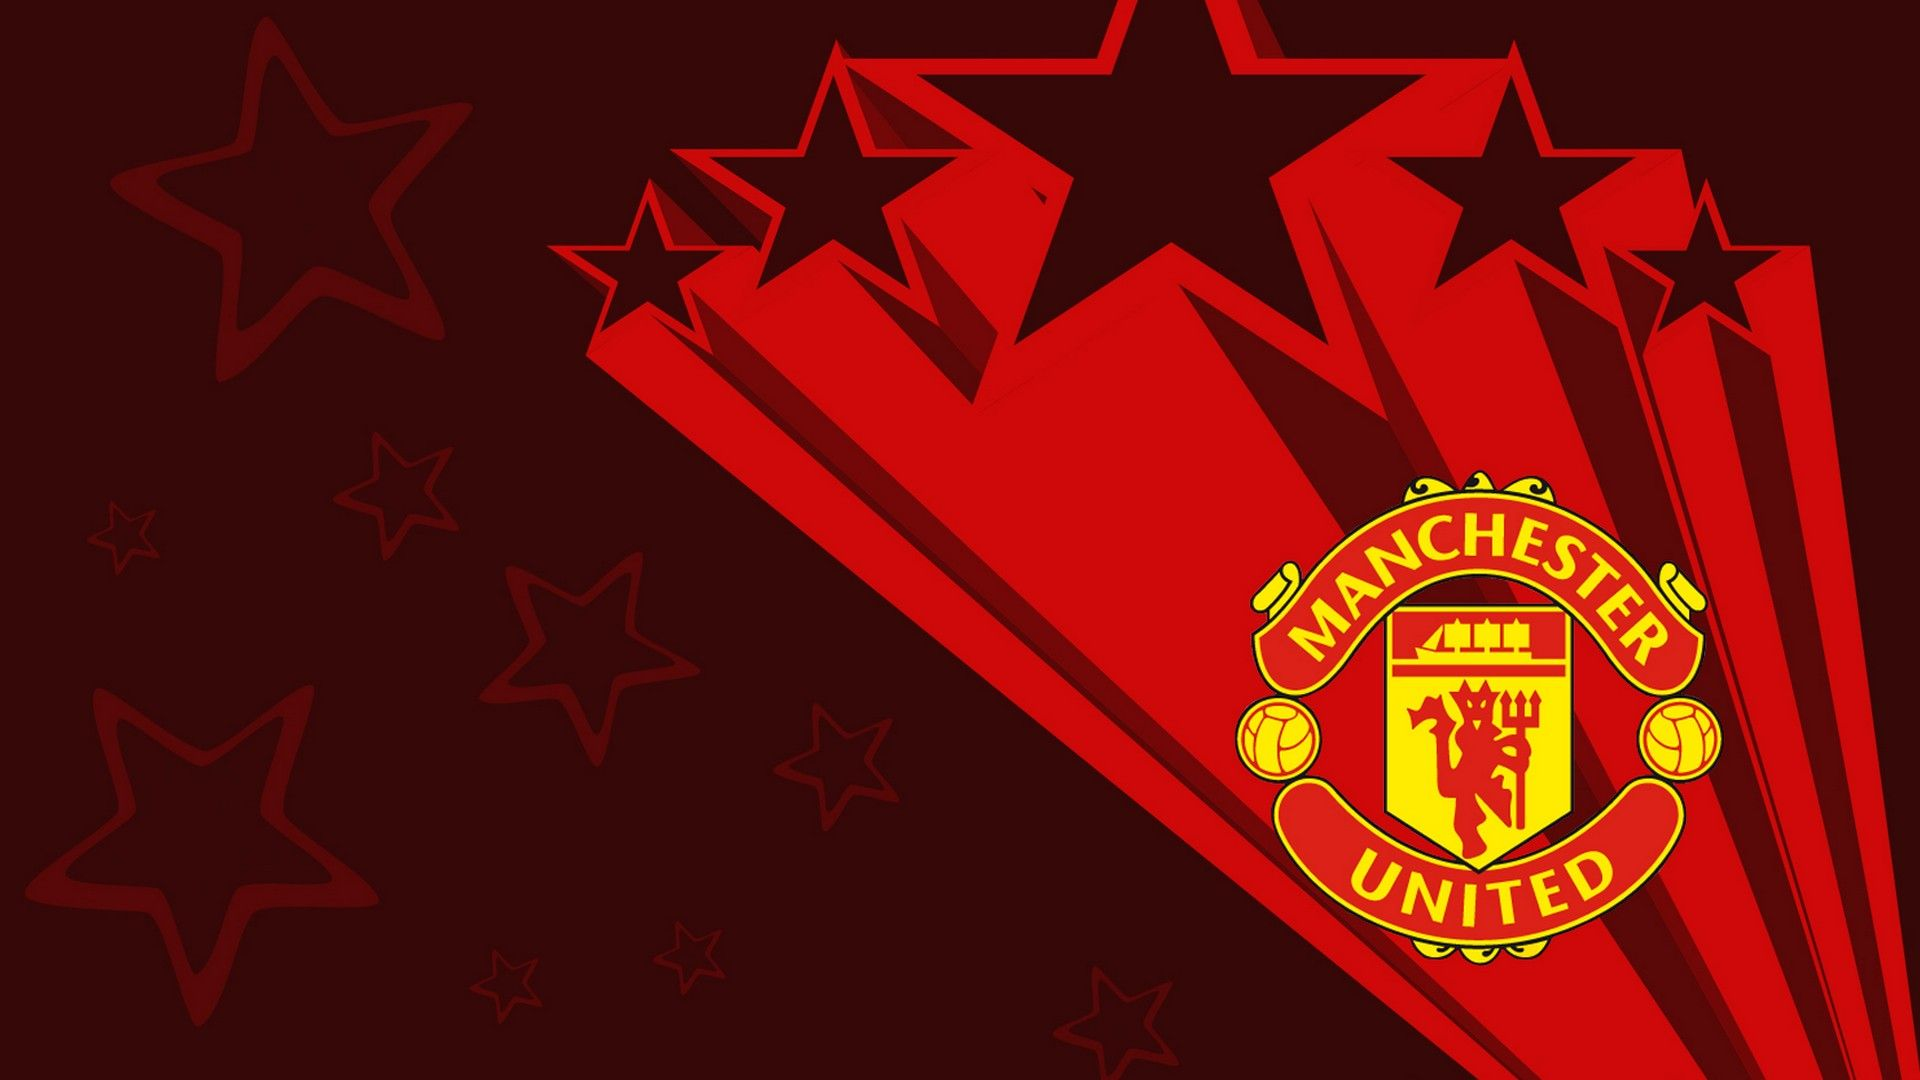 Manchester United Desktop Wallpapers Best Football Wallpaper Hd In 2020 Manchester United Wallpaper Football Wallpaper Manchester United Logo